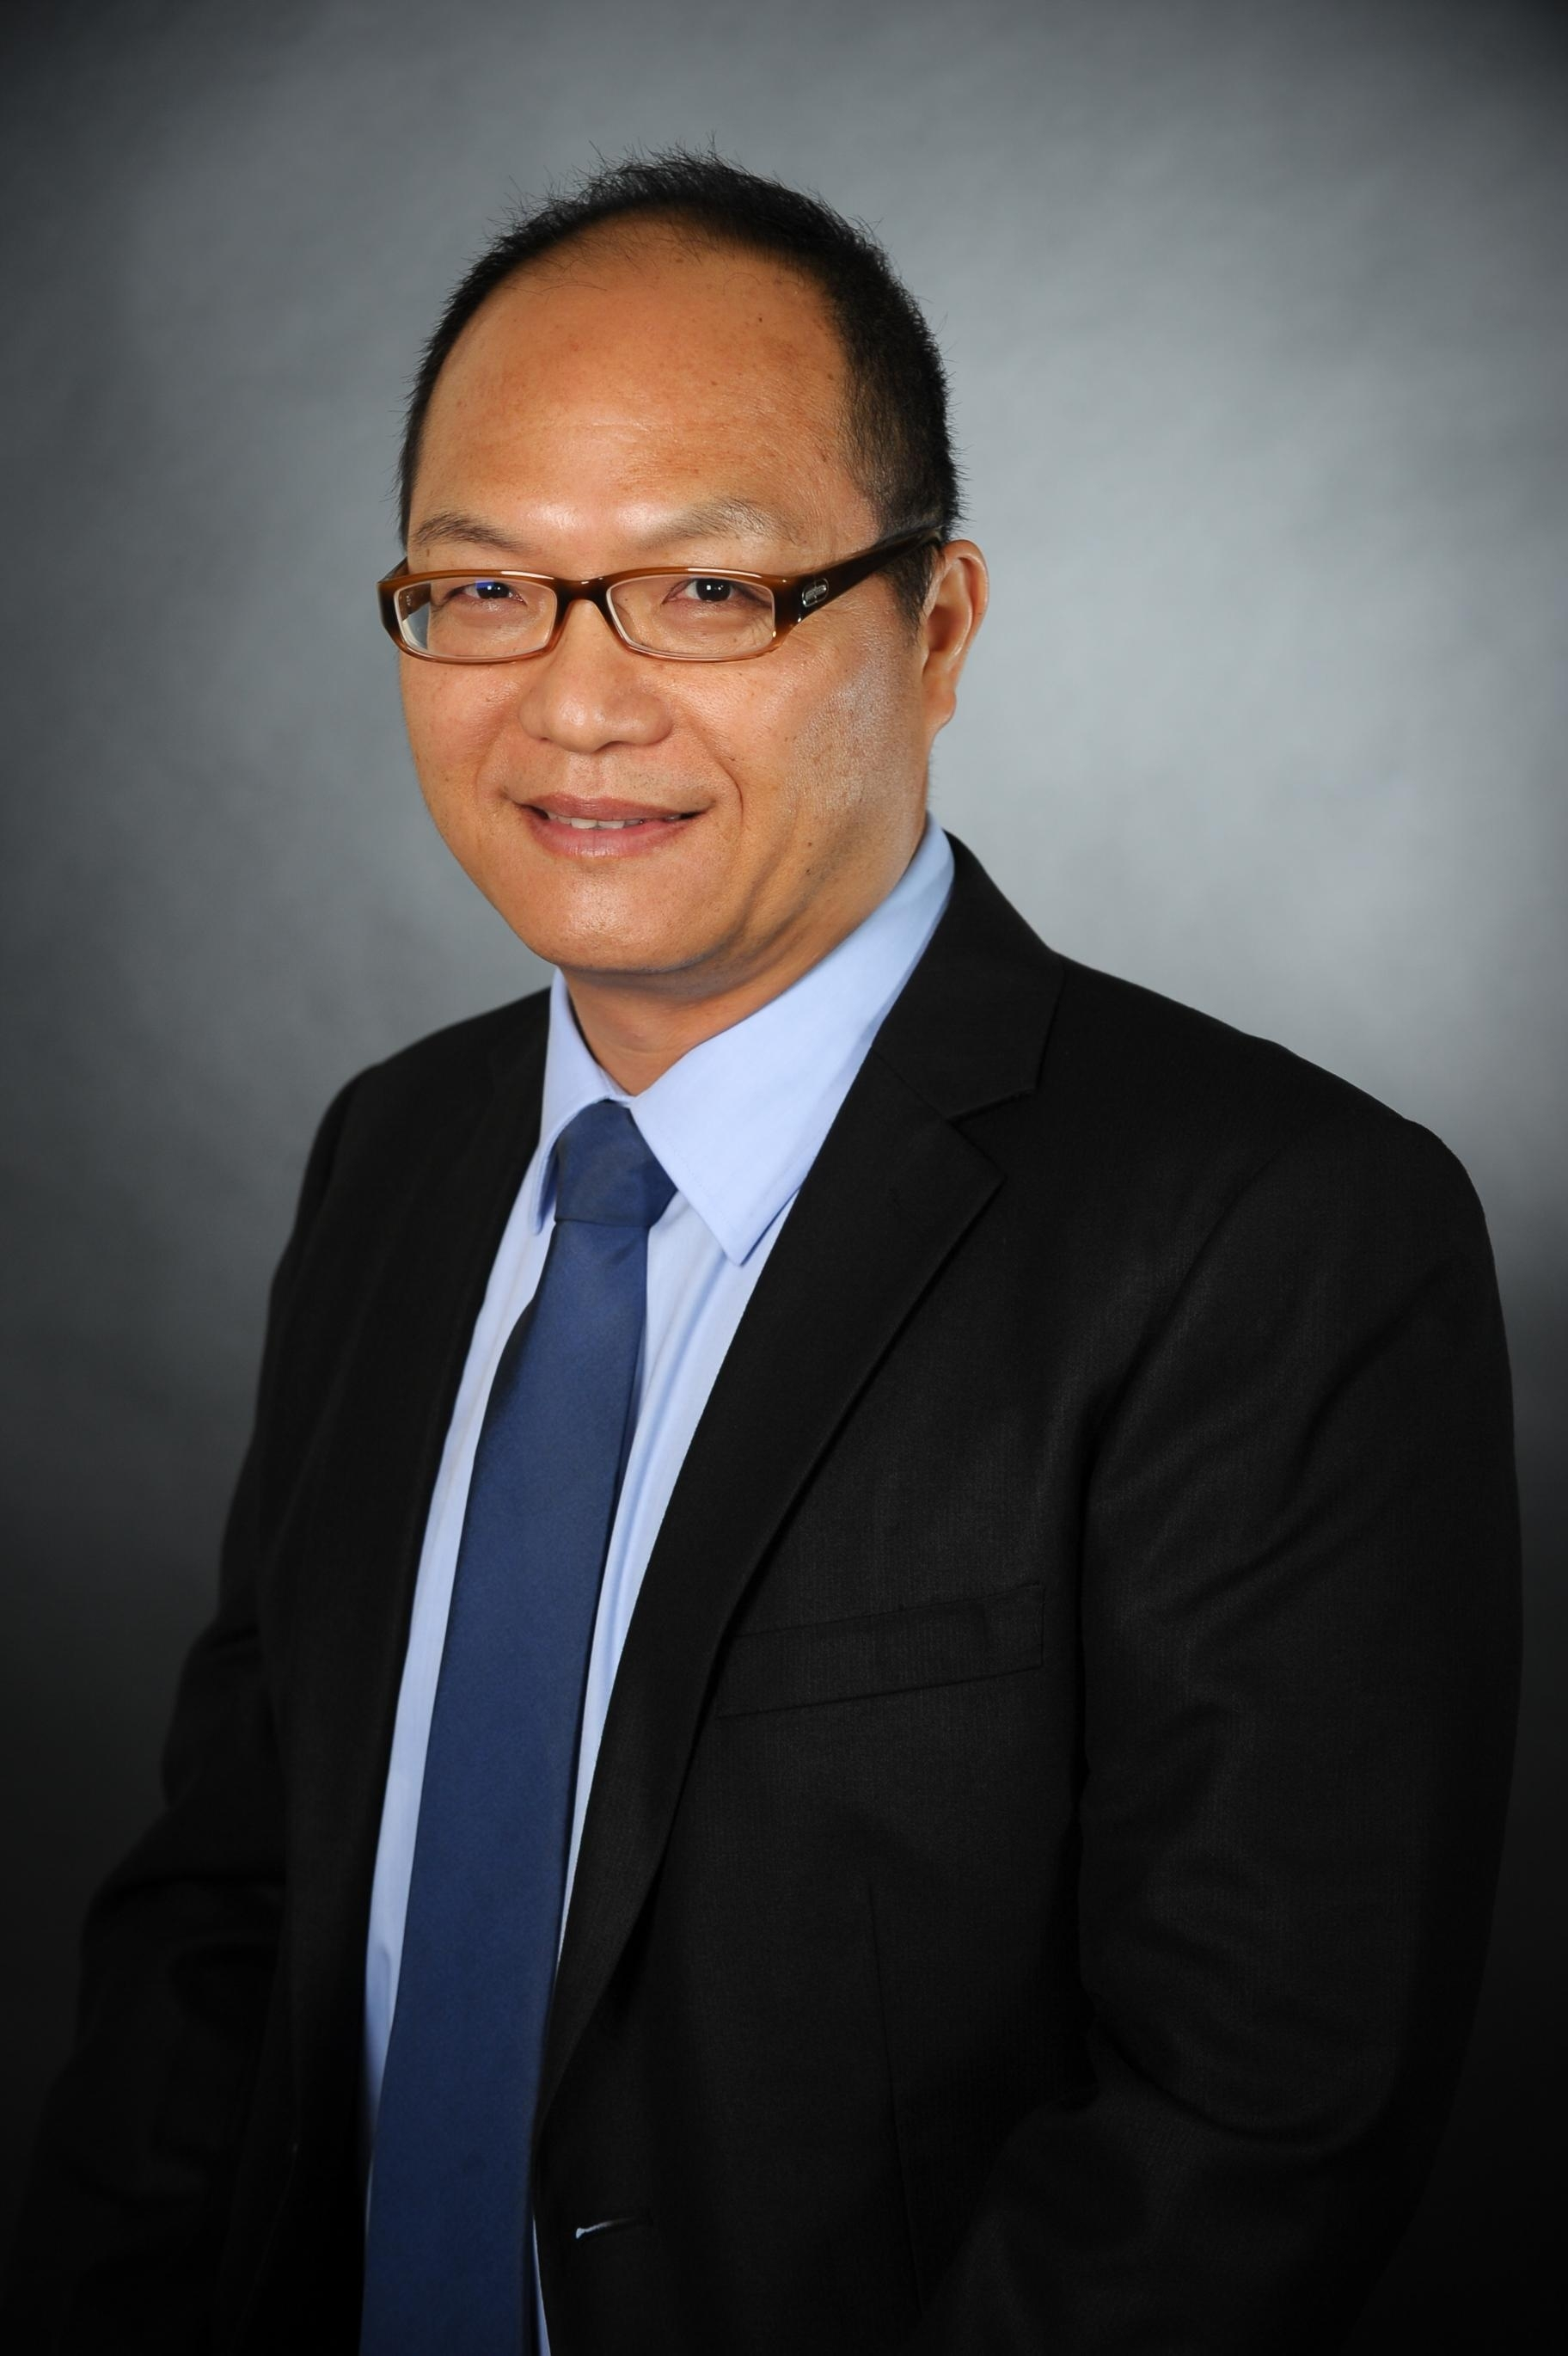 Profile photo for Ming-hui Li